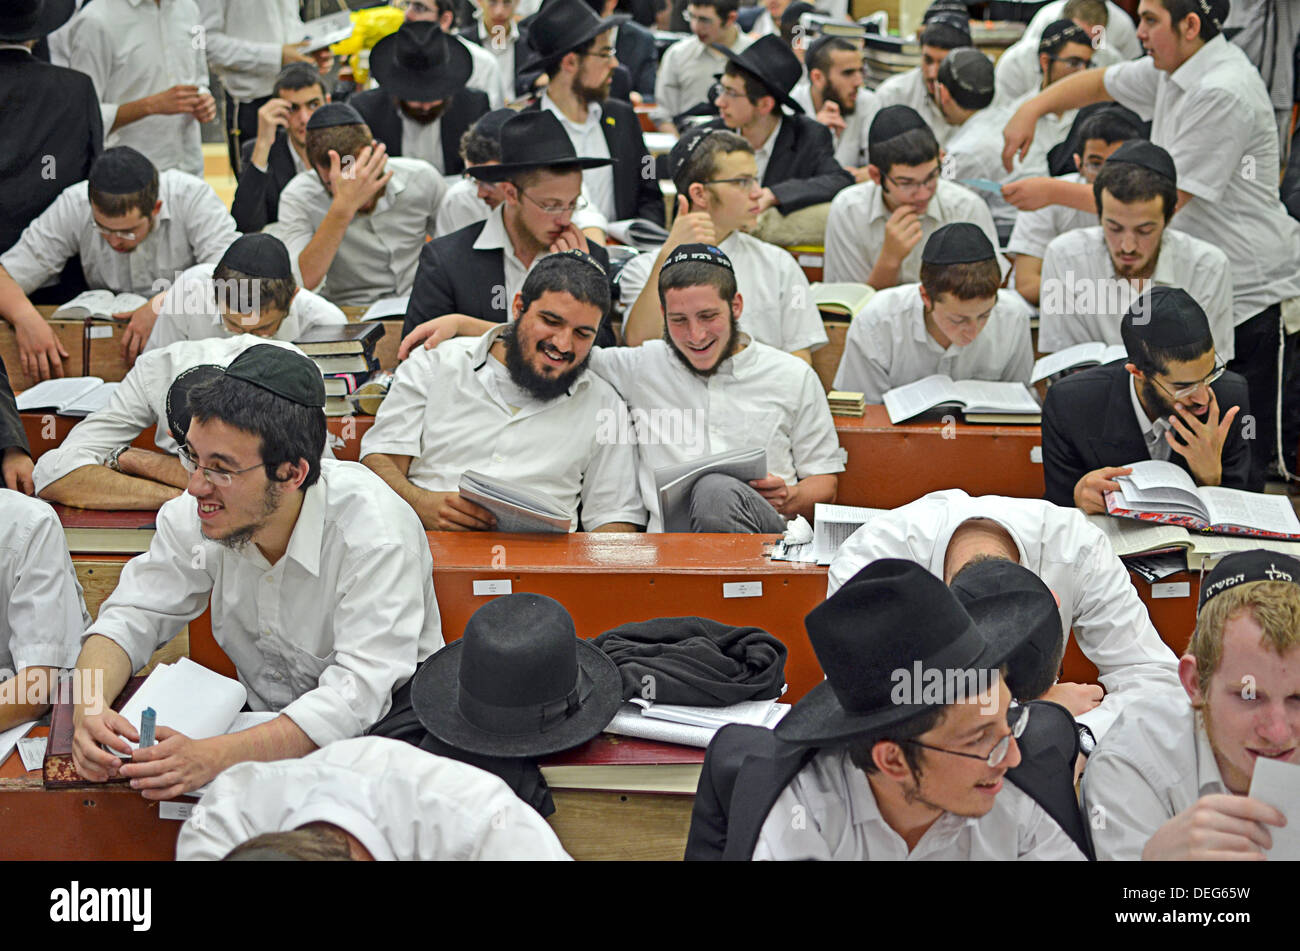 Orthodox Jewish boys studying at Lubavitch headquarters in the Crown Heights section of  Brooklyn, New York - Stock Image